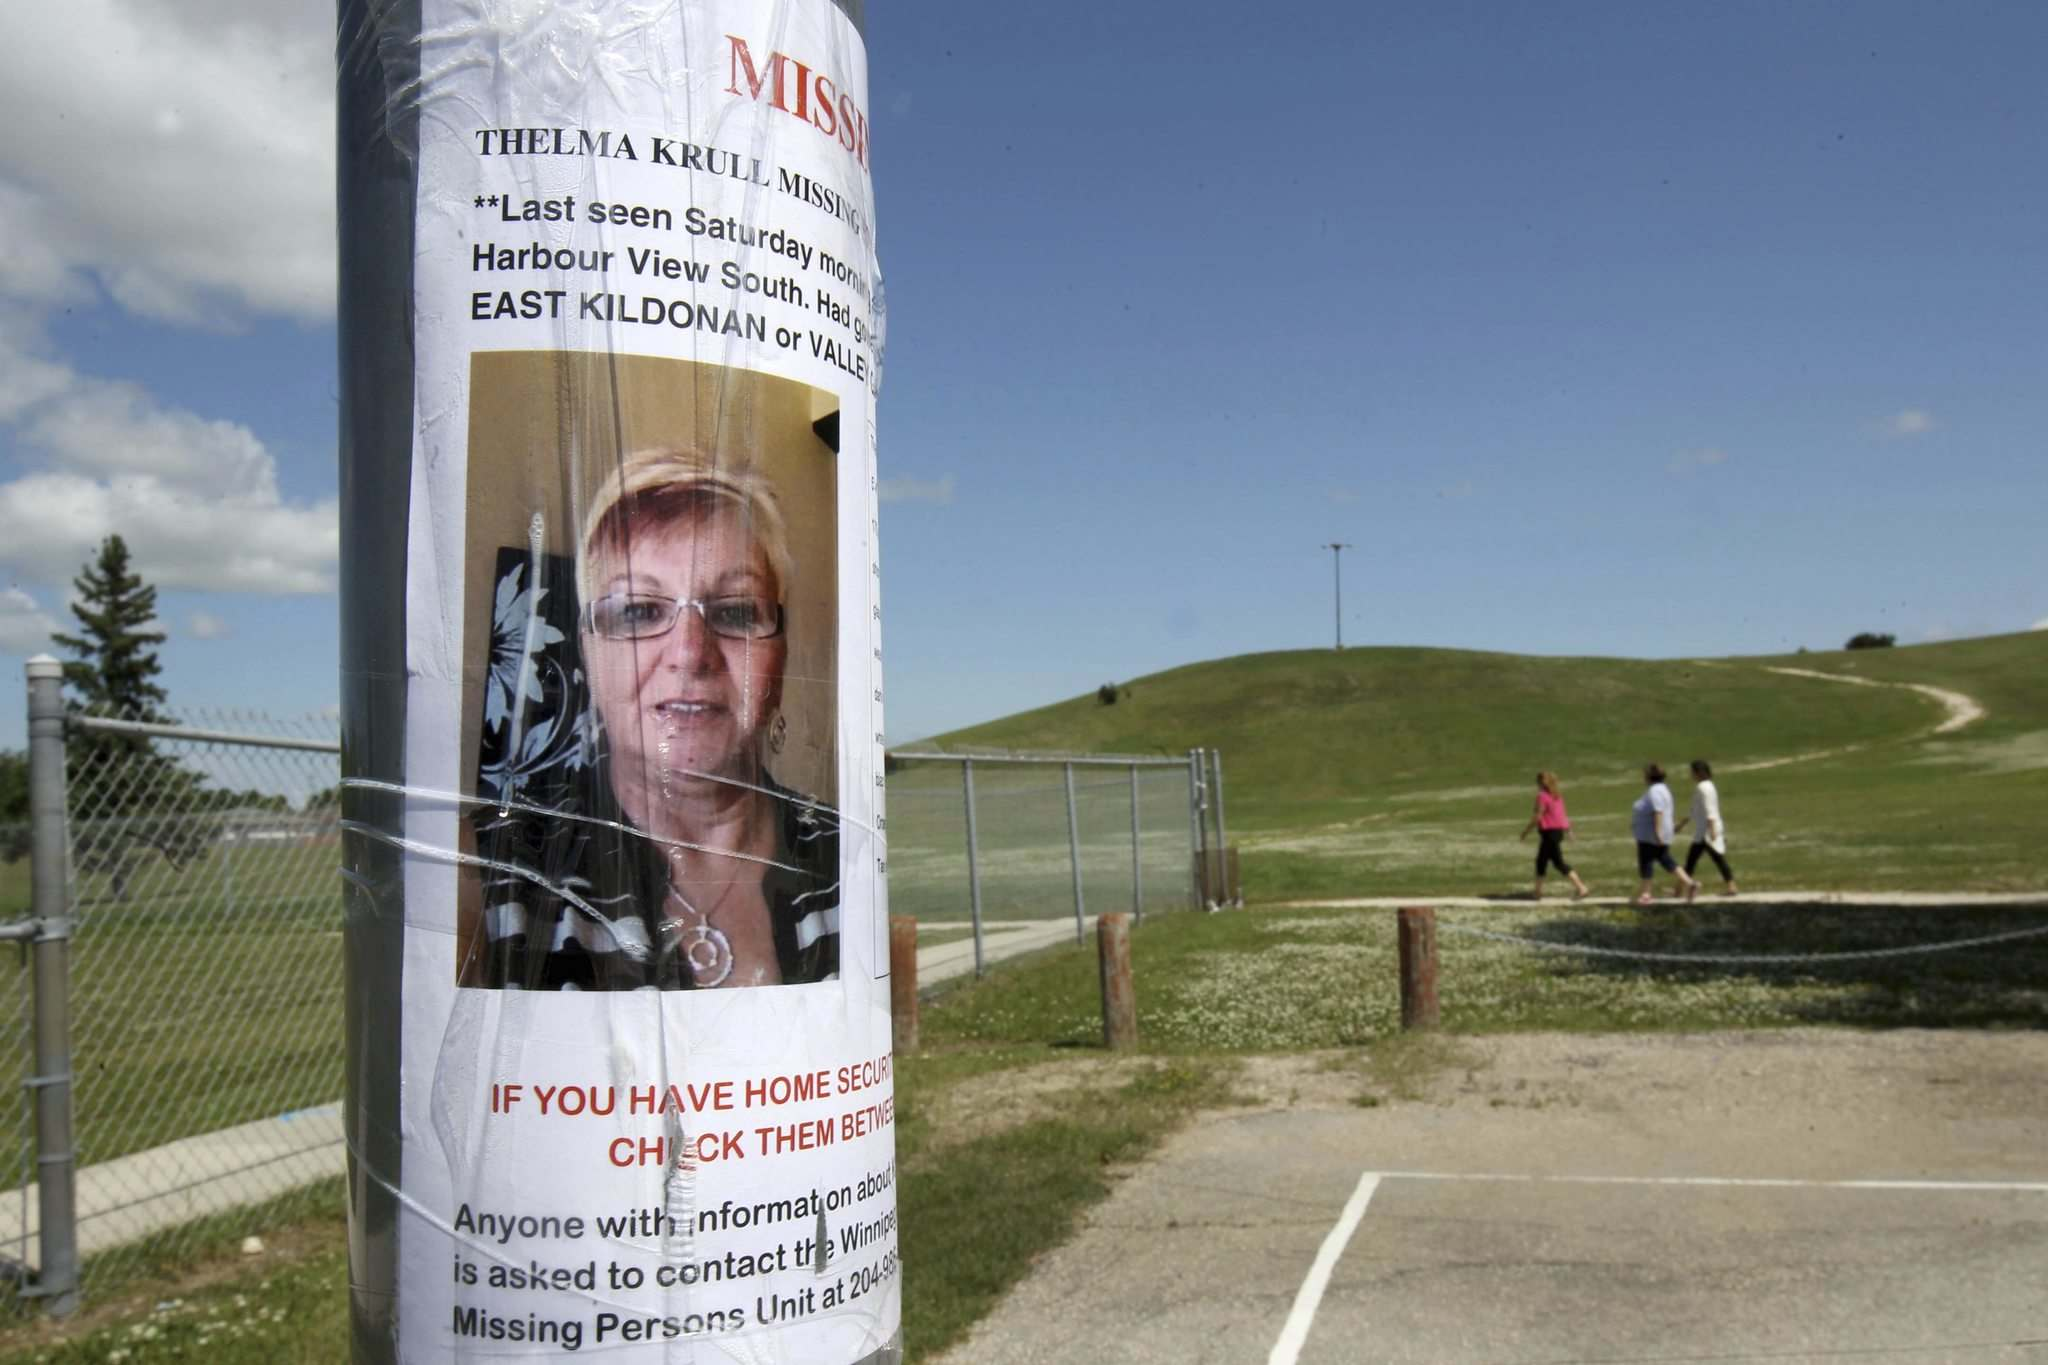 JOE BRYKSA / WINNIPEG FREE PRESS FILES</p><p>A missing-person poster is taped to a pole near Kildonan East High School in the area where Thelma Krull was last seen on July 11, 2015.</p>